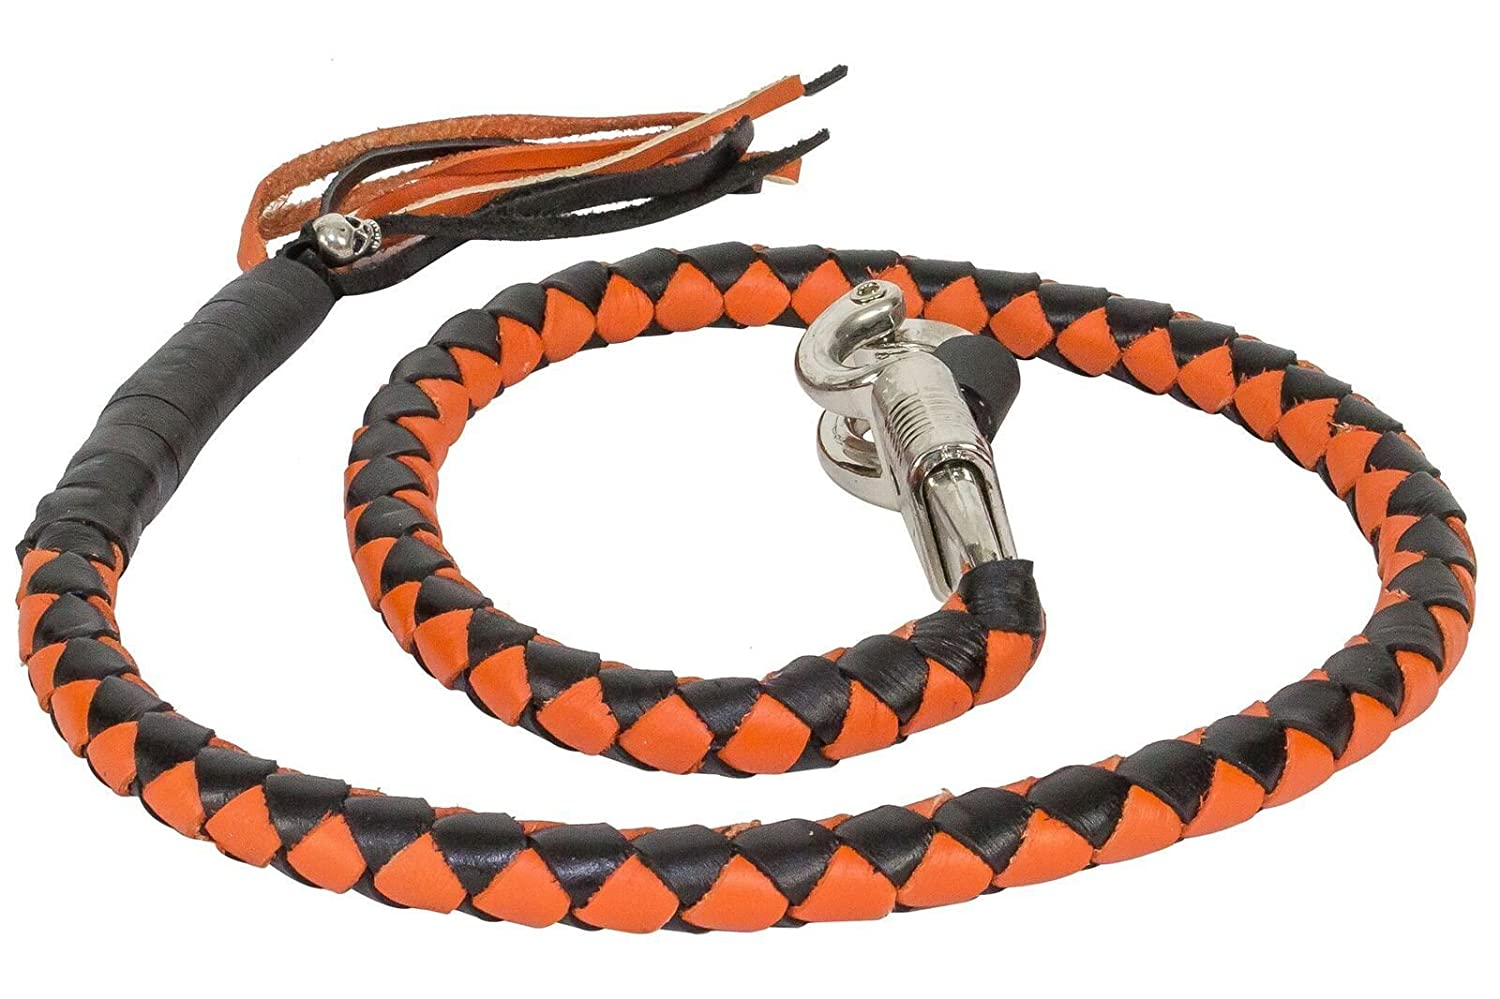 QueenDream Dream Motorcycle Riding Biker Old School Leather Get Back Whip 42 Orange /& Blk New